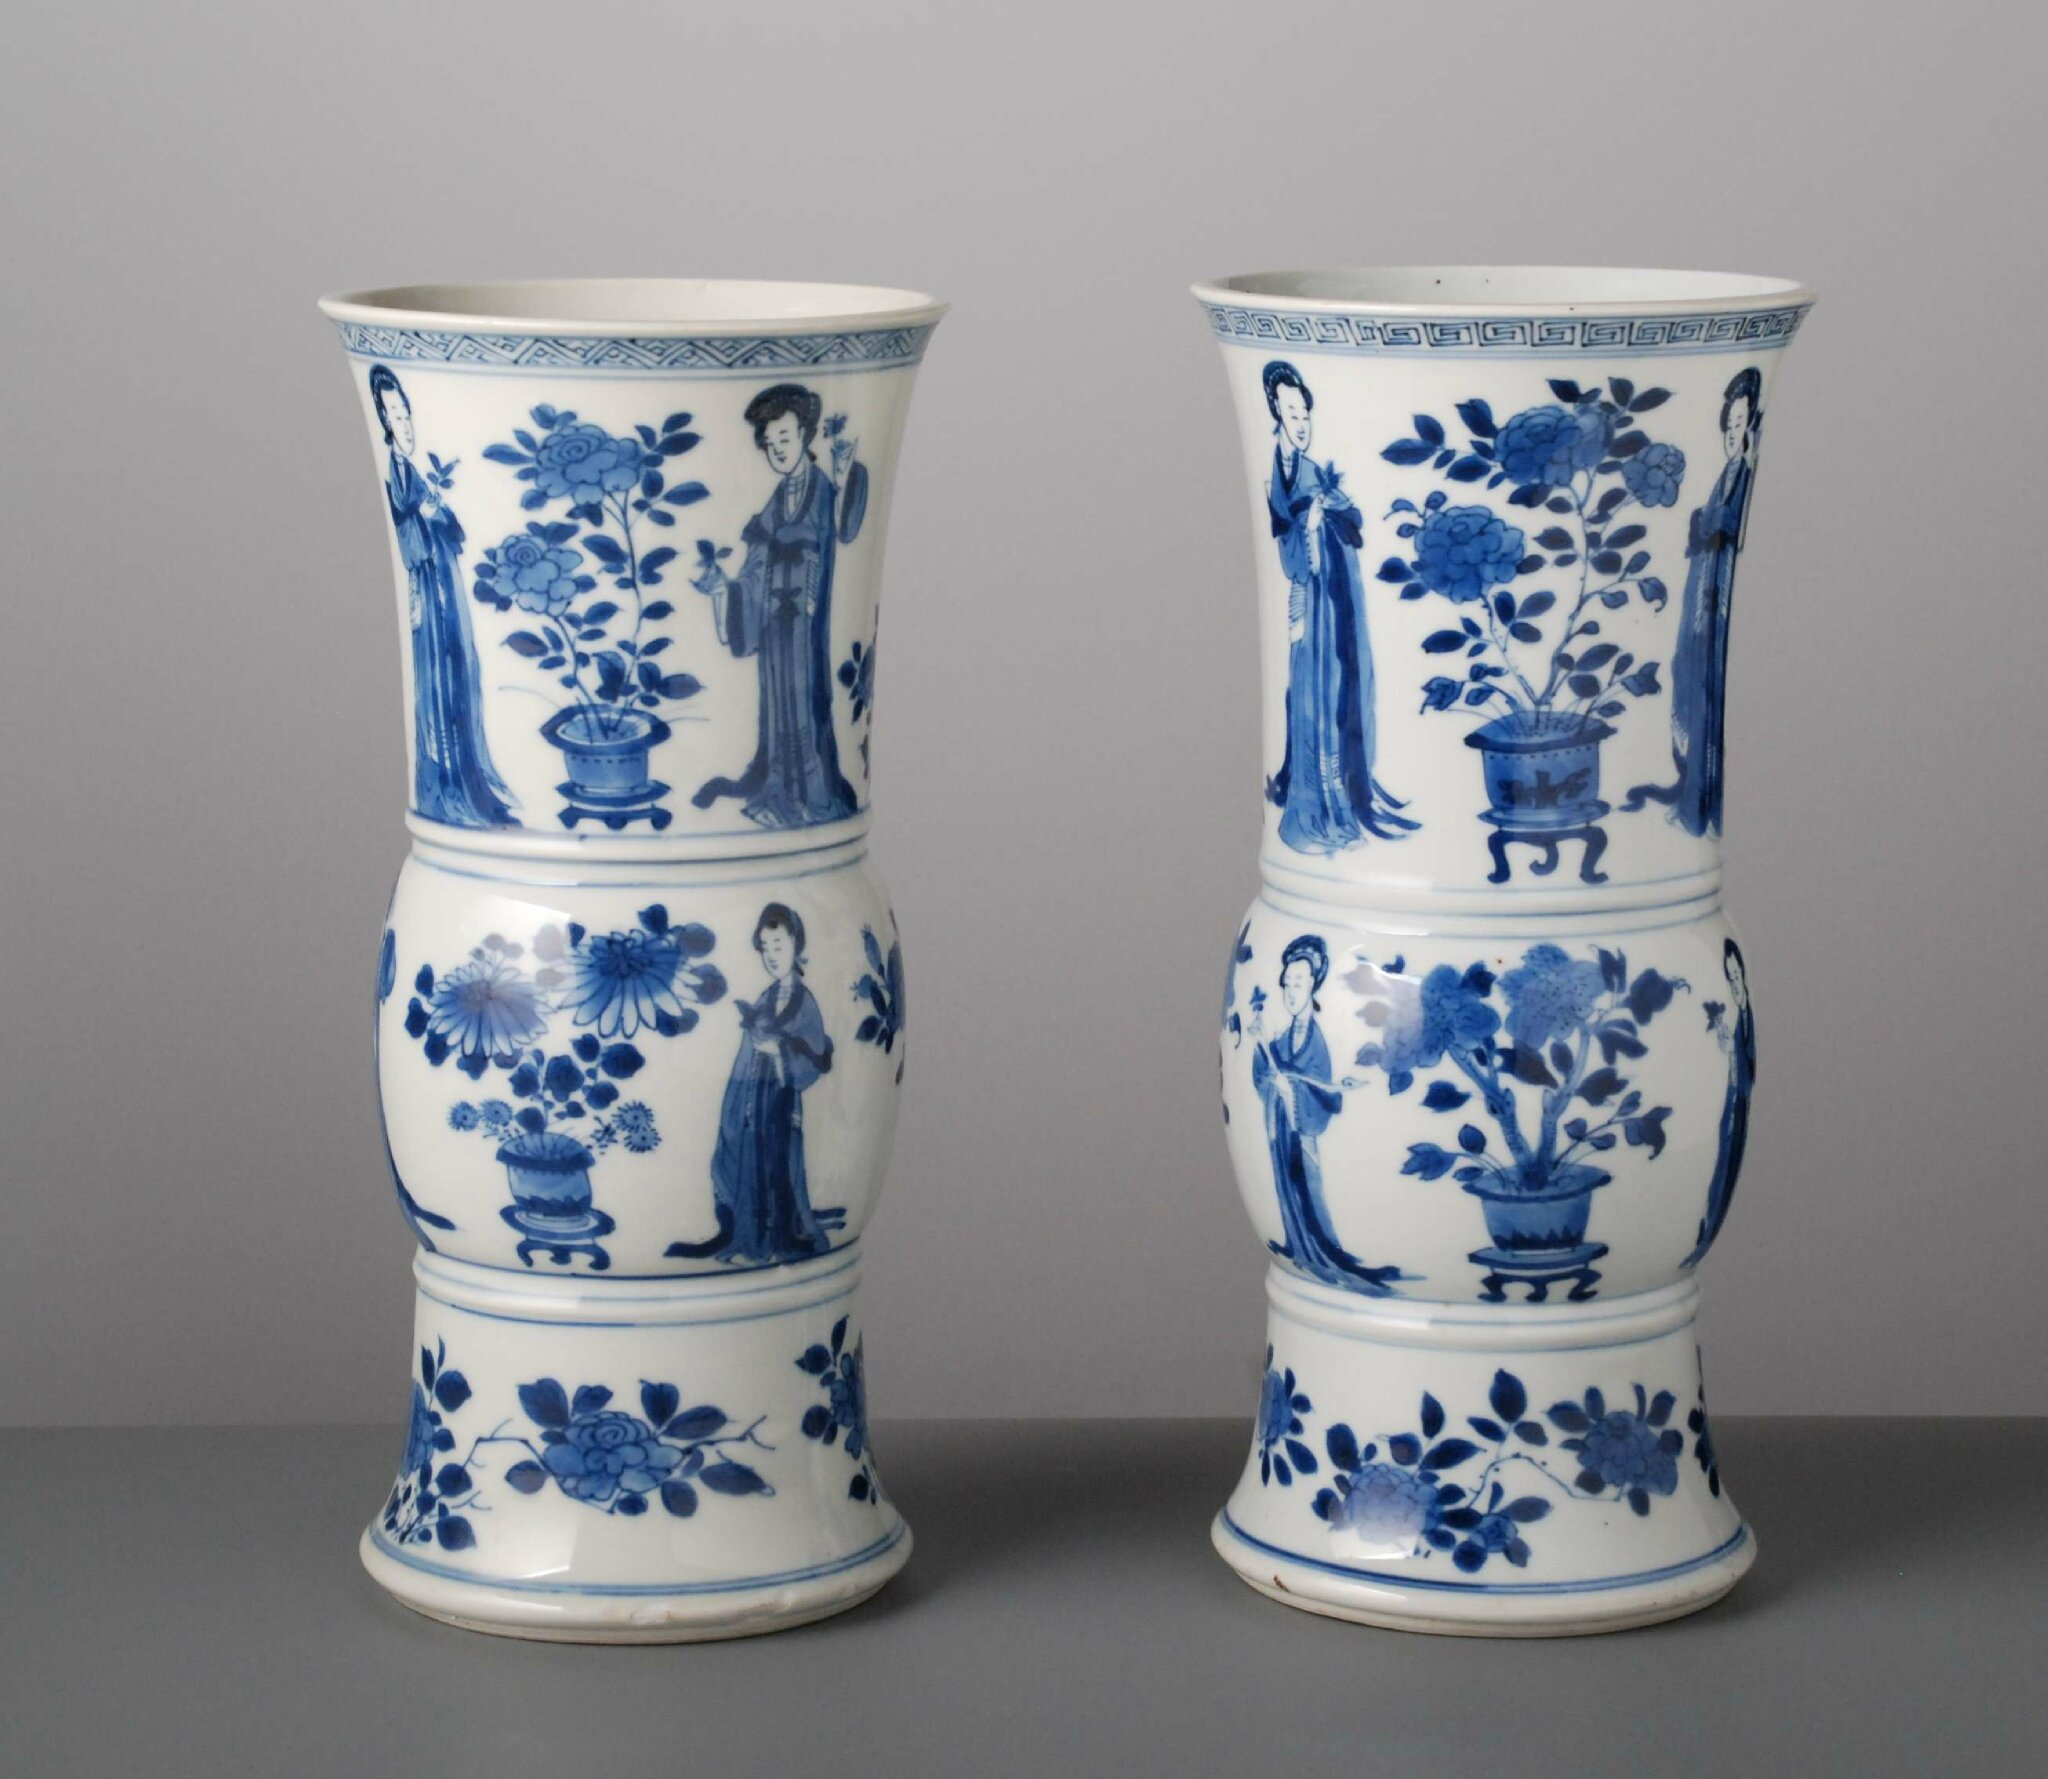 Pair of vases with long elizas, China, Kangxi Period (1662-1722). Photo courtesy Vanderven Oriental Art.